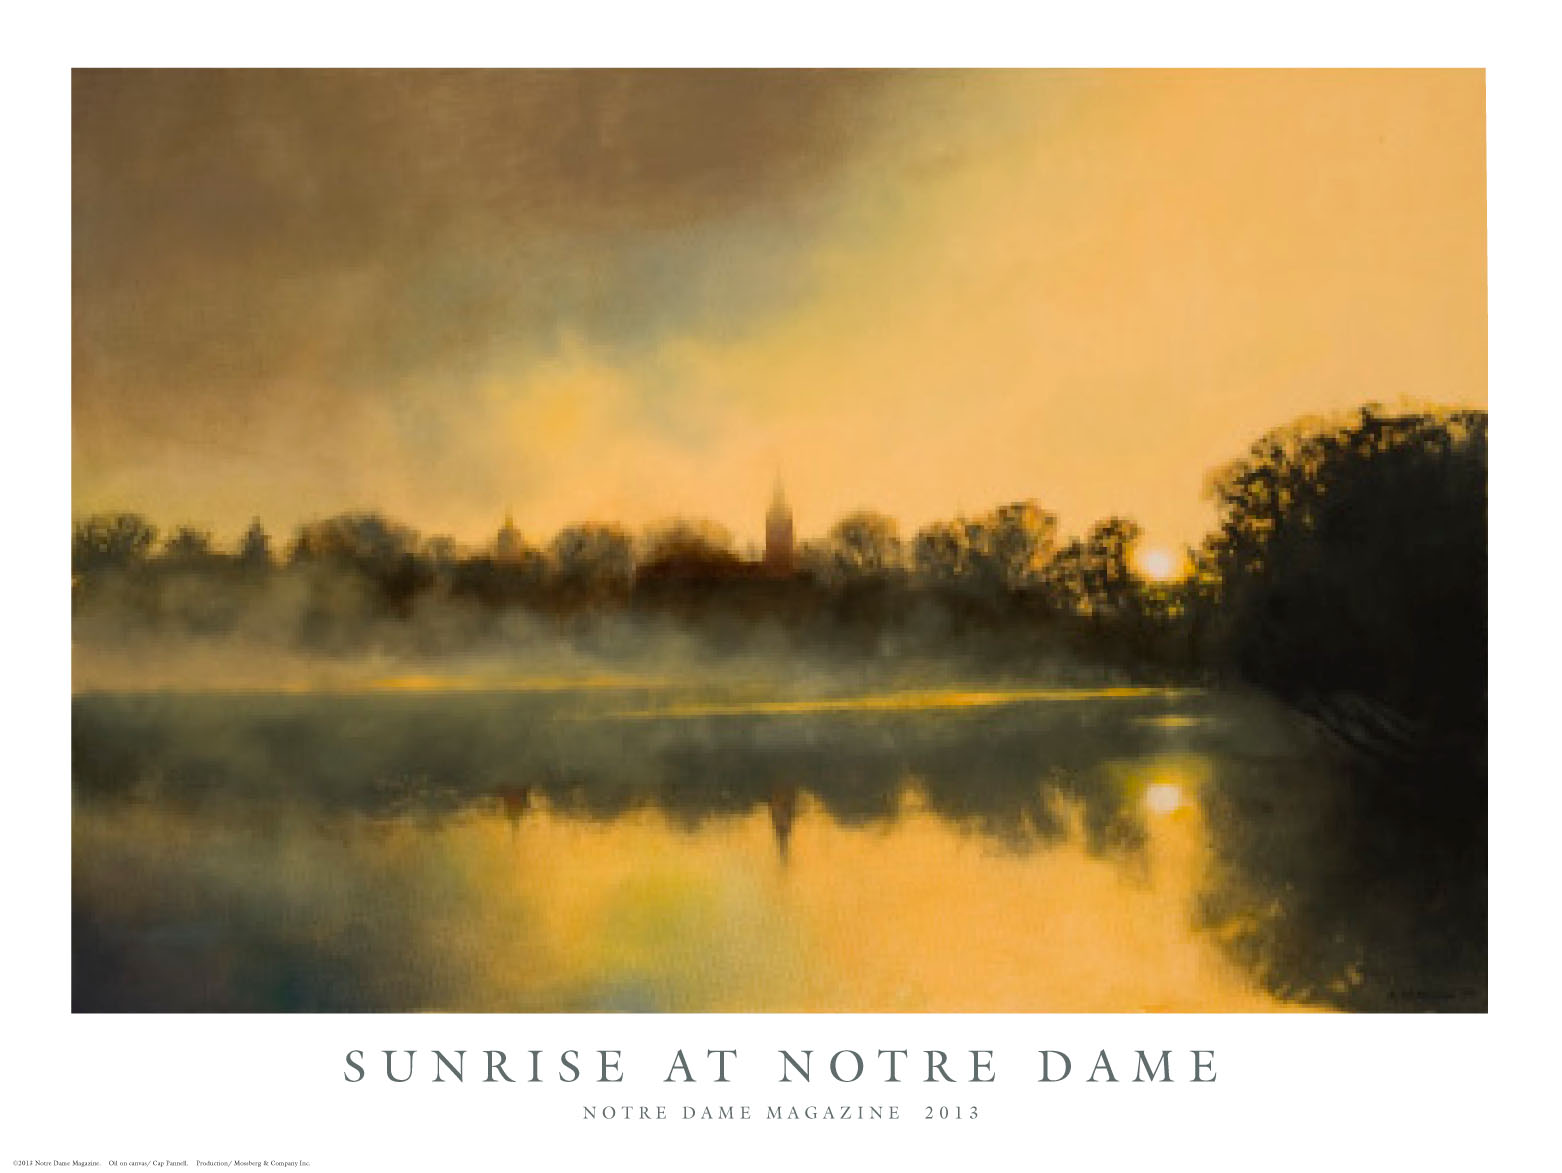 Sunrise at Notre Dame, artwork by Cap Panell